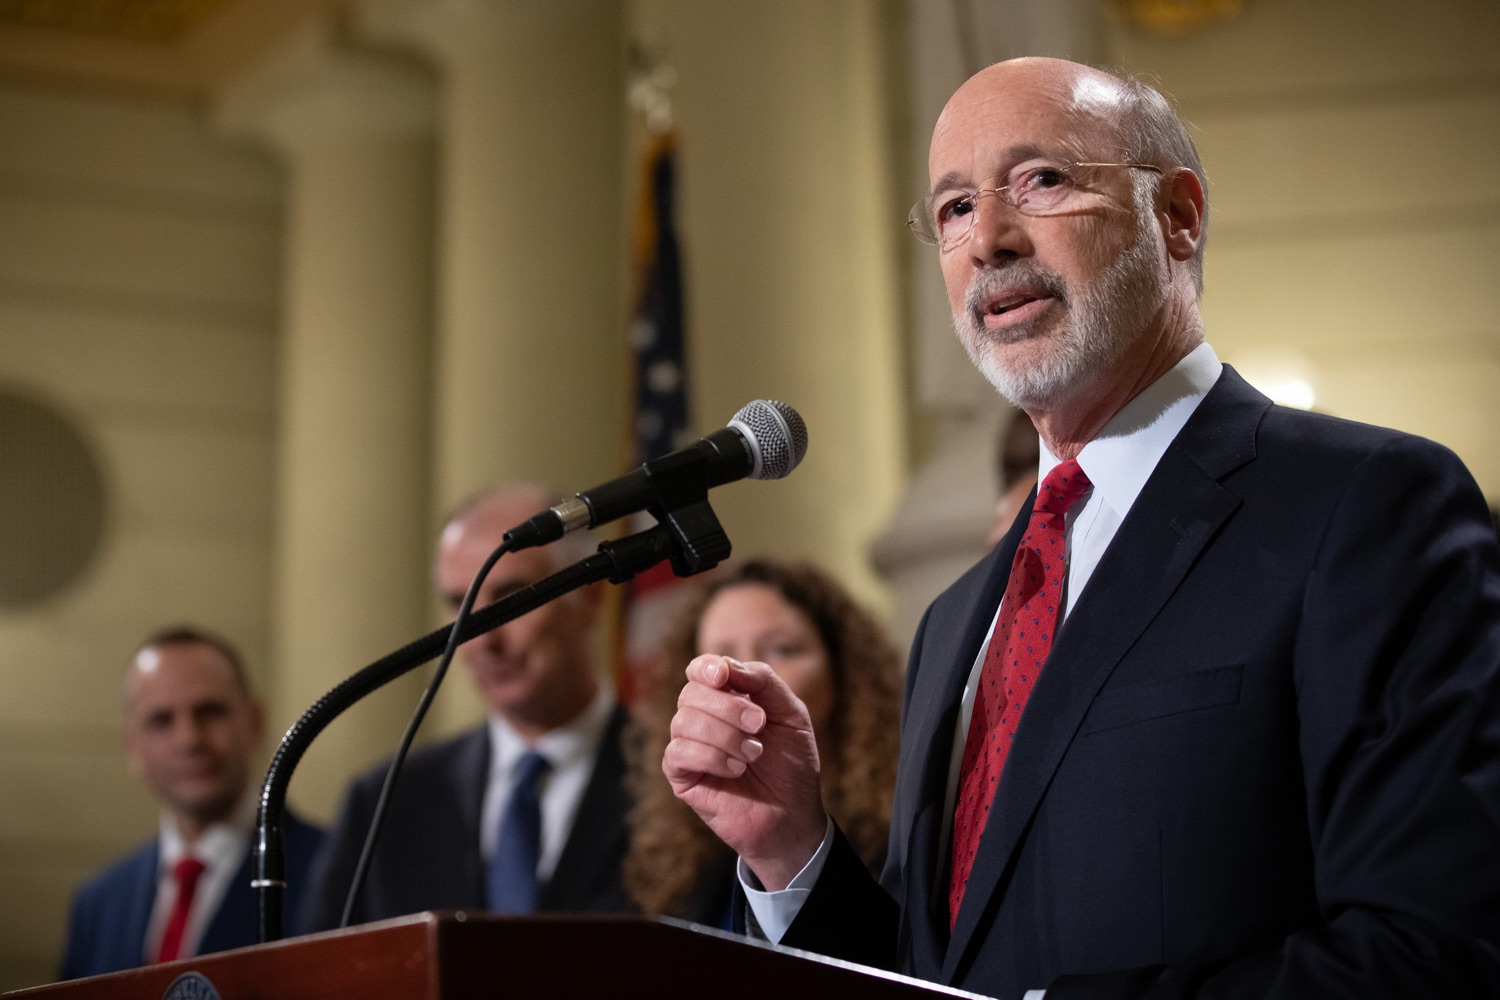 """<a href=""""http://filesource.abacast.com/commonwealthofpa/photo/17601_gov_right_on_crime_dz_009.jpg"""" target=""""_blank"""">⇣Download Photo<br></a>Governor Tom Wolf speaking at the event. Governor Tom Wolf was joined by Deputy Secretary of Corrections Christian Stephens and national criminal justice reform advocates today in the Capitol Rotunda to push for commonsense probation reforms that address probation sentences and probation lengths.  Harrisburg, PA  November 18, 2019"""